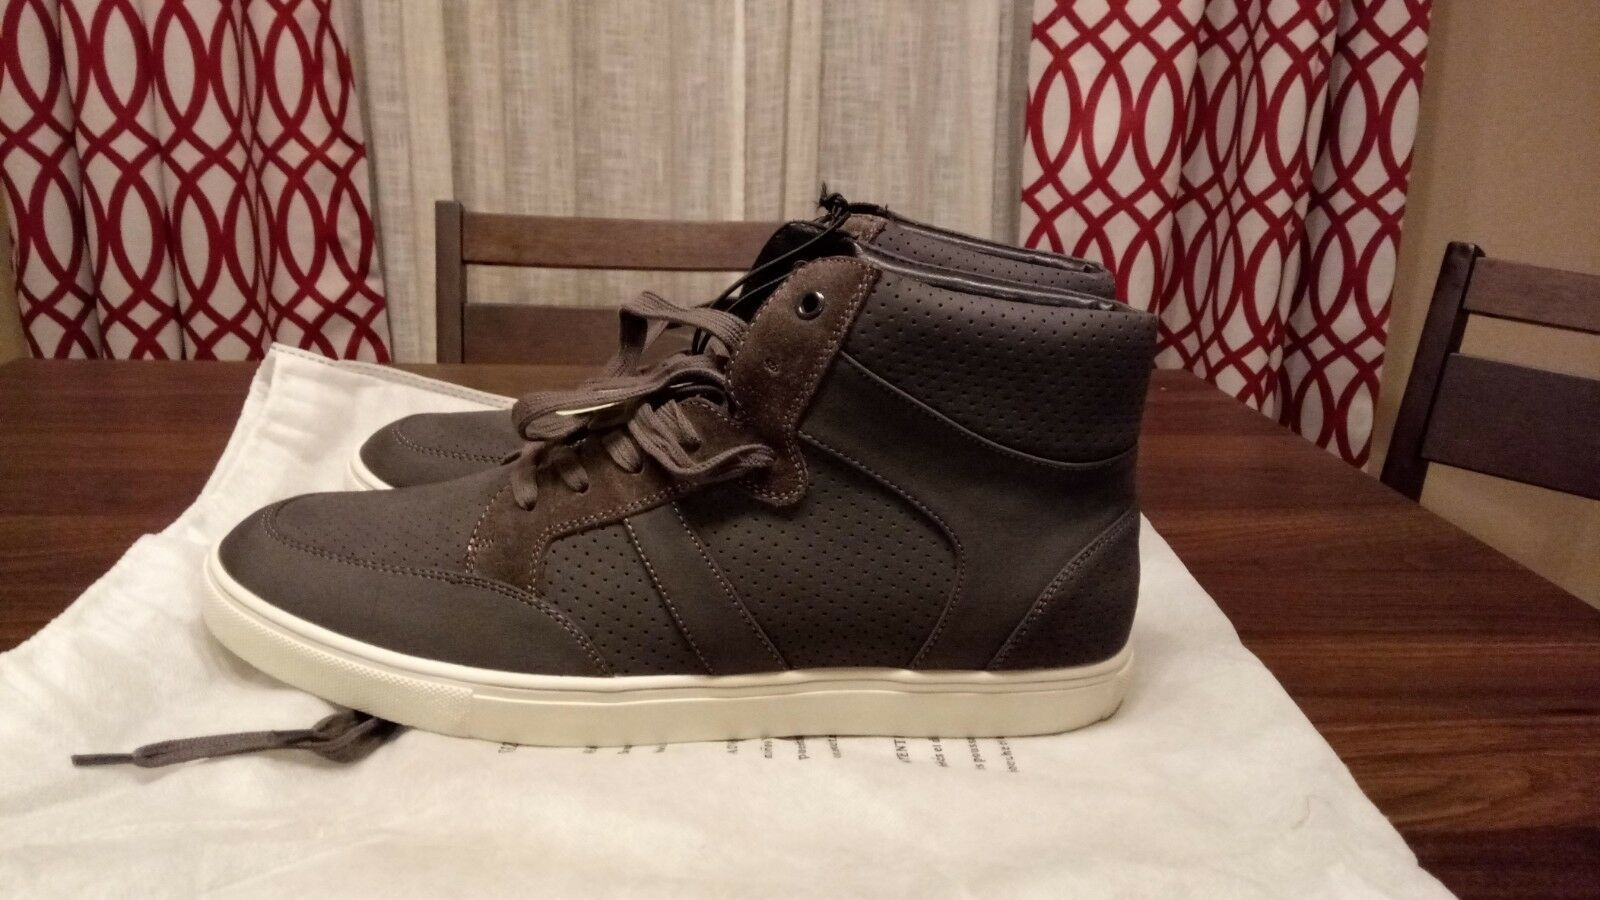 EXPRESS Perforated High Top Sneaker Grey Size US 11 28cm